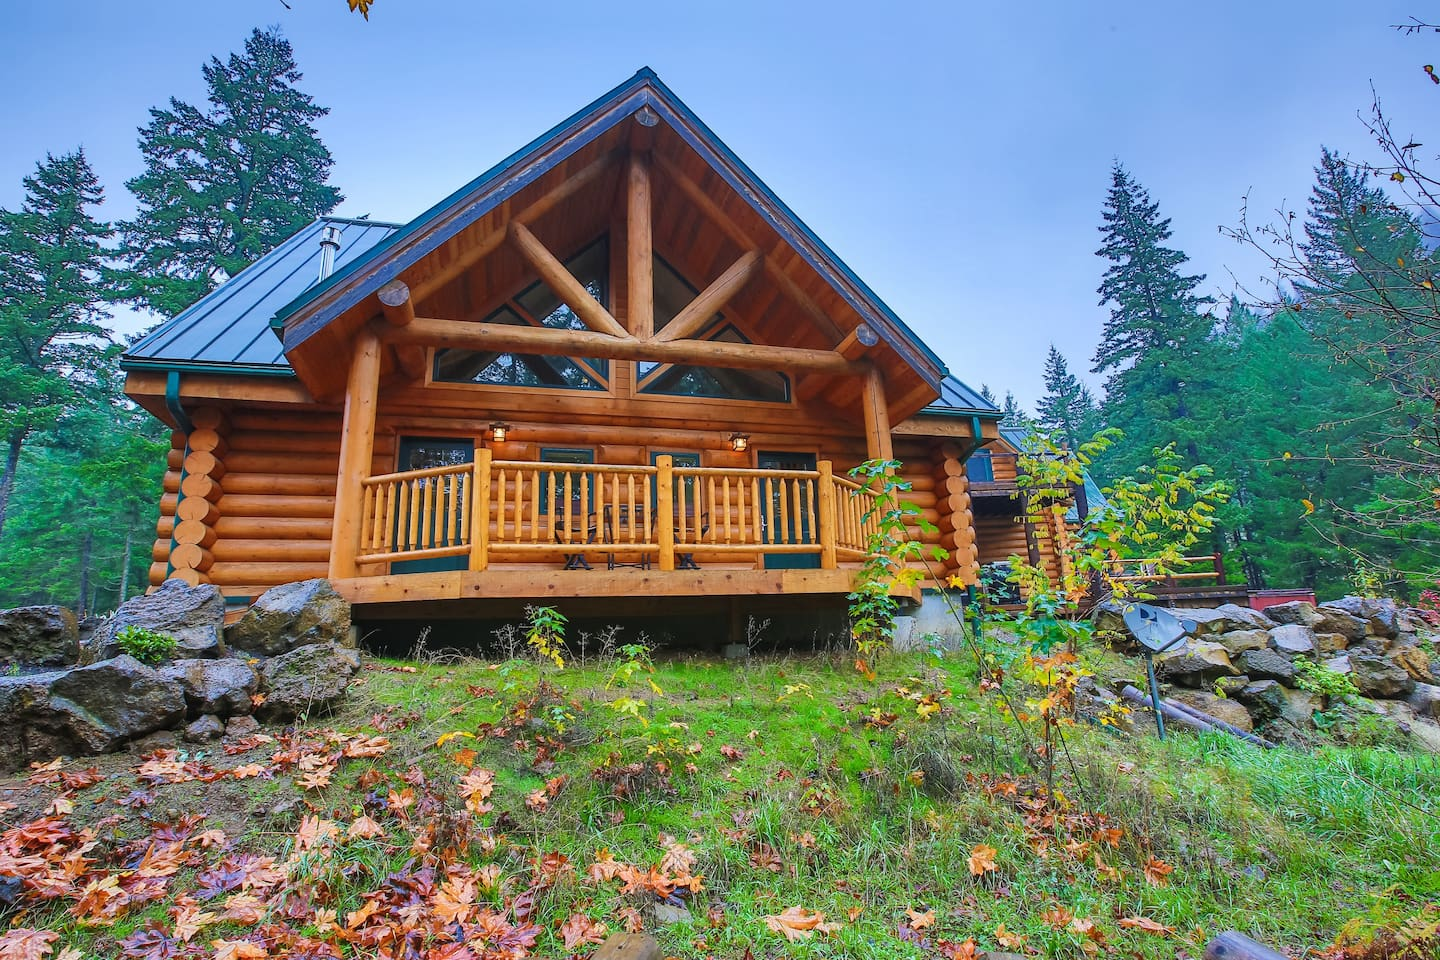 Stunning log cabin structure with 2 guest units